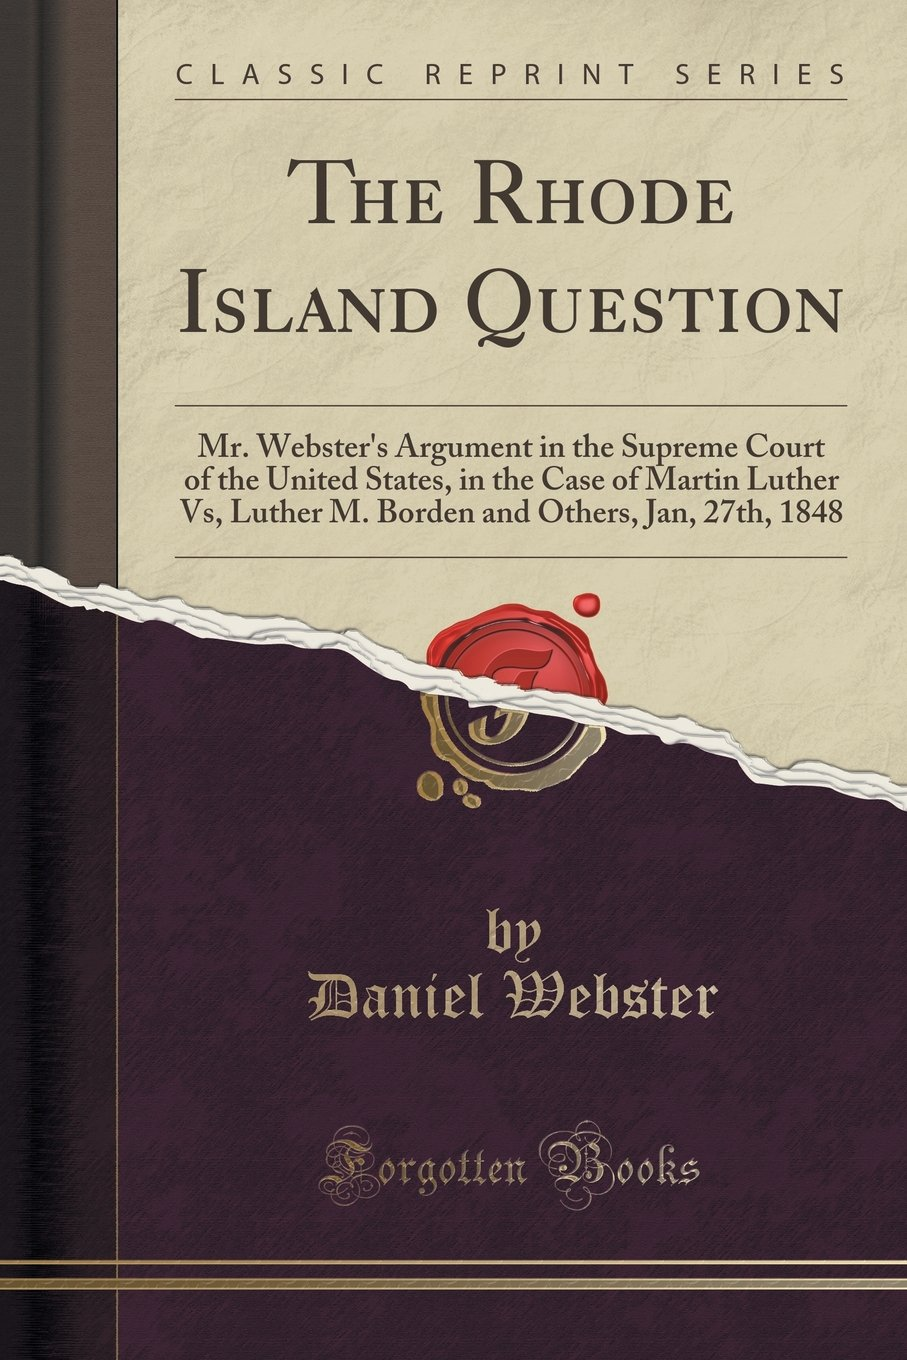 The Rhode Island Question: Mr. Webster's Argument in the Supreme Court of the United States, in the Case of Martin Luther Vs, Luther M. Borden and Others, Jan, 27th, 1848 (Classic Reprint) ebook